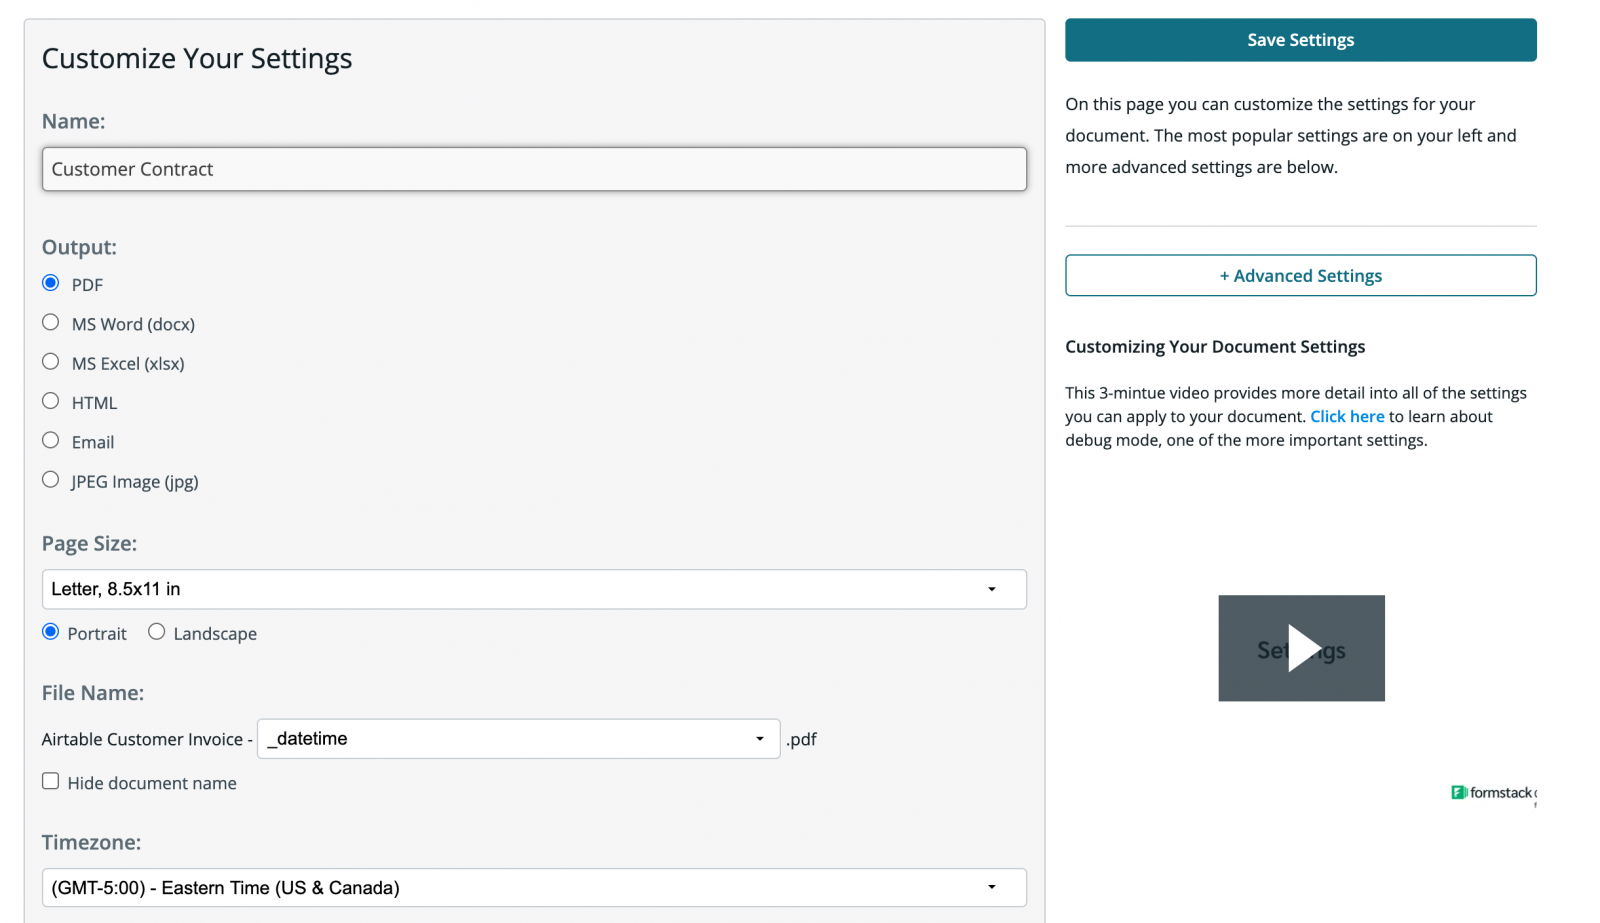 Customize Your Settings Formstack Documents Product Screenshot